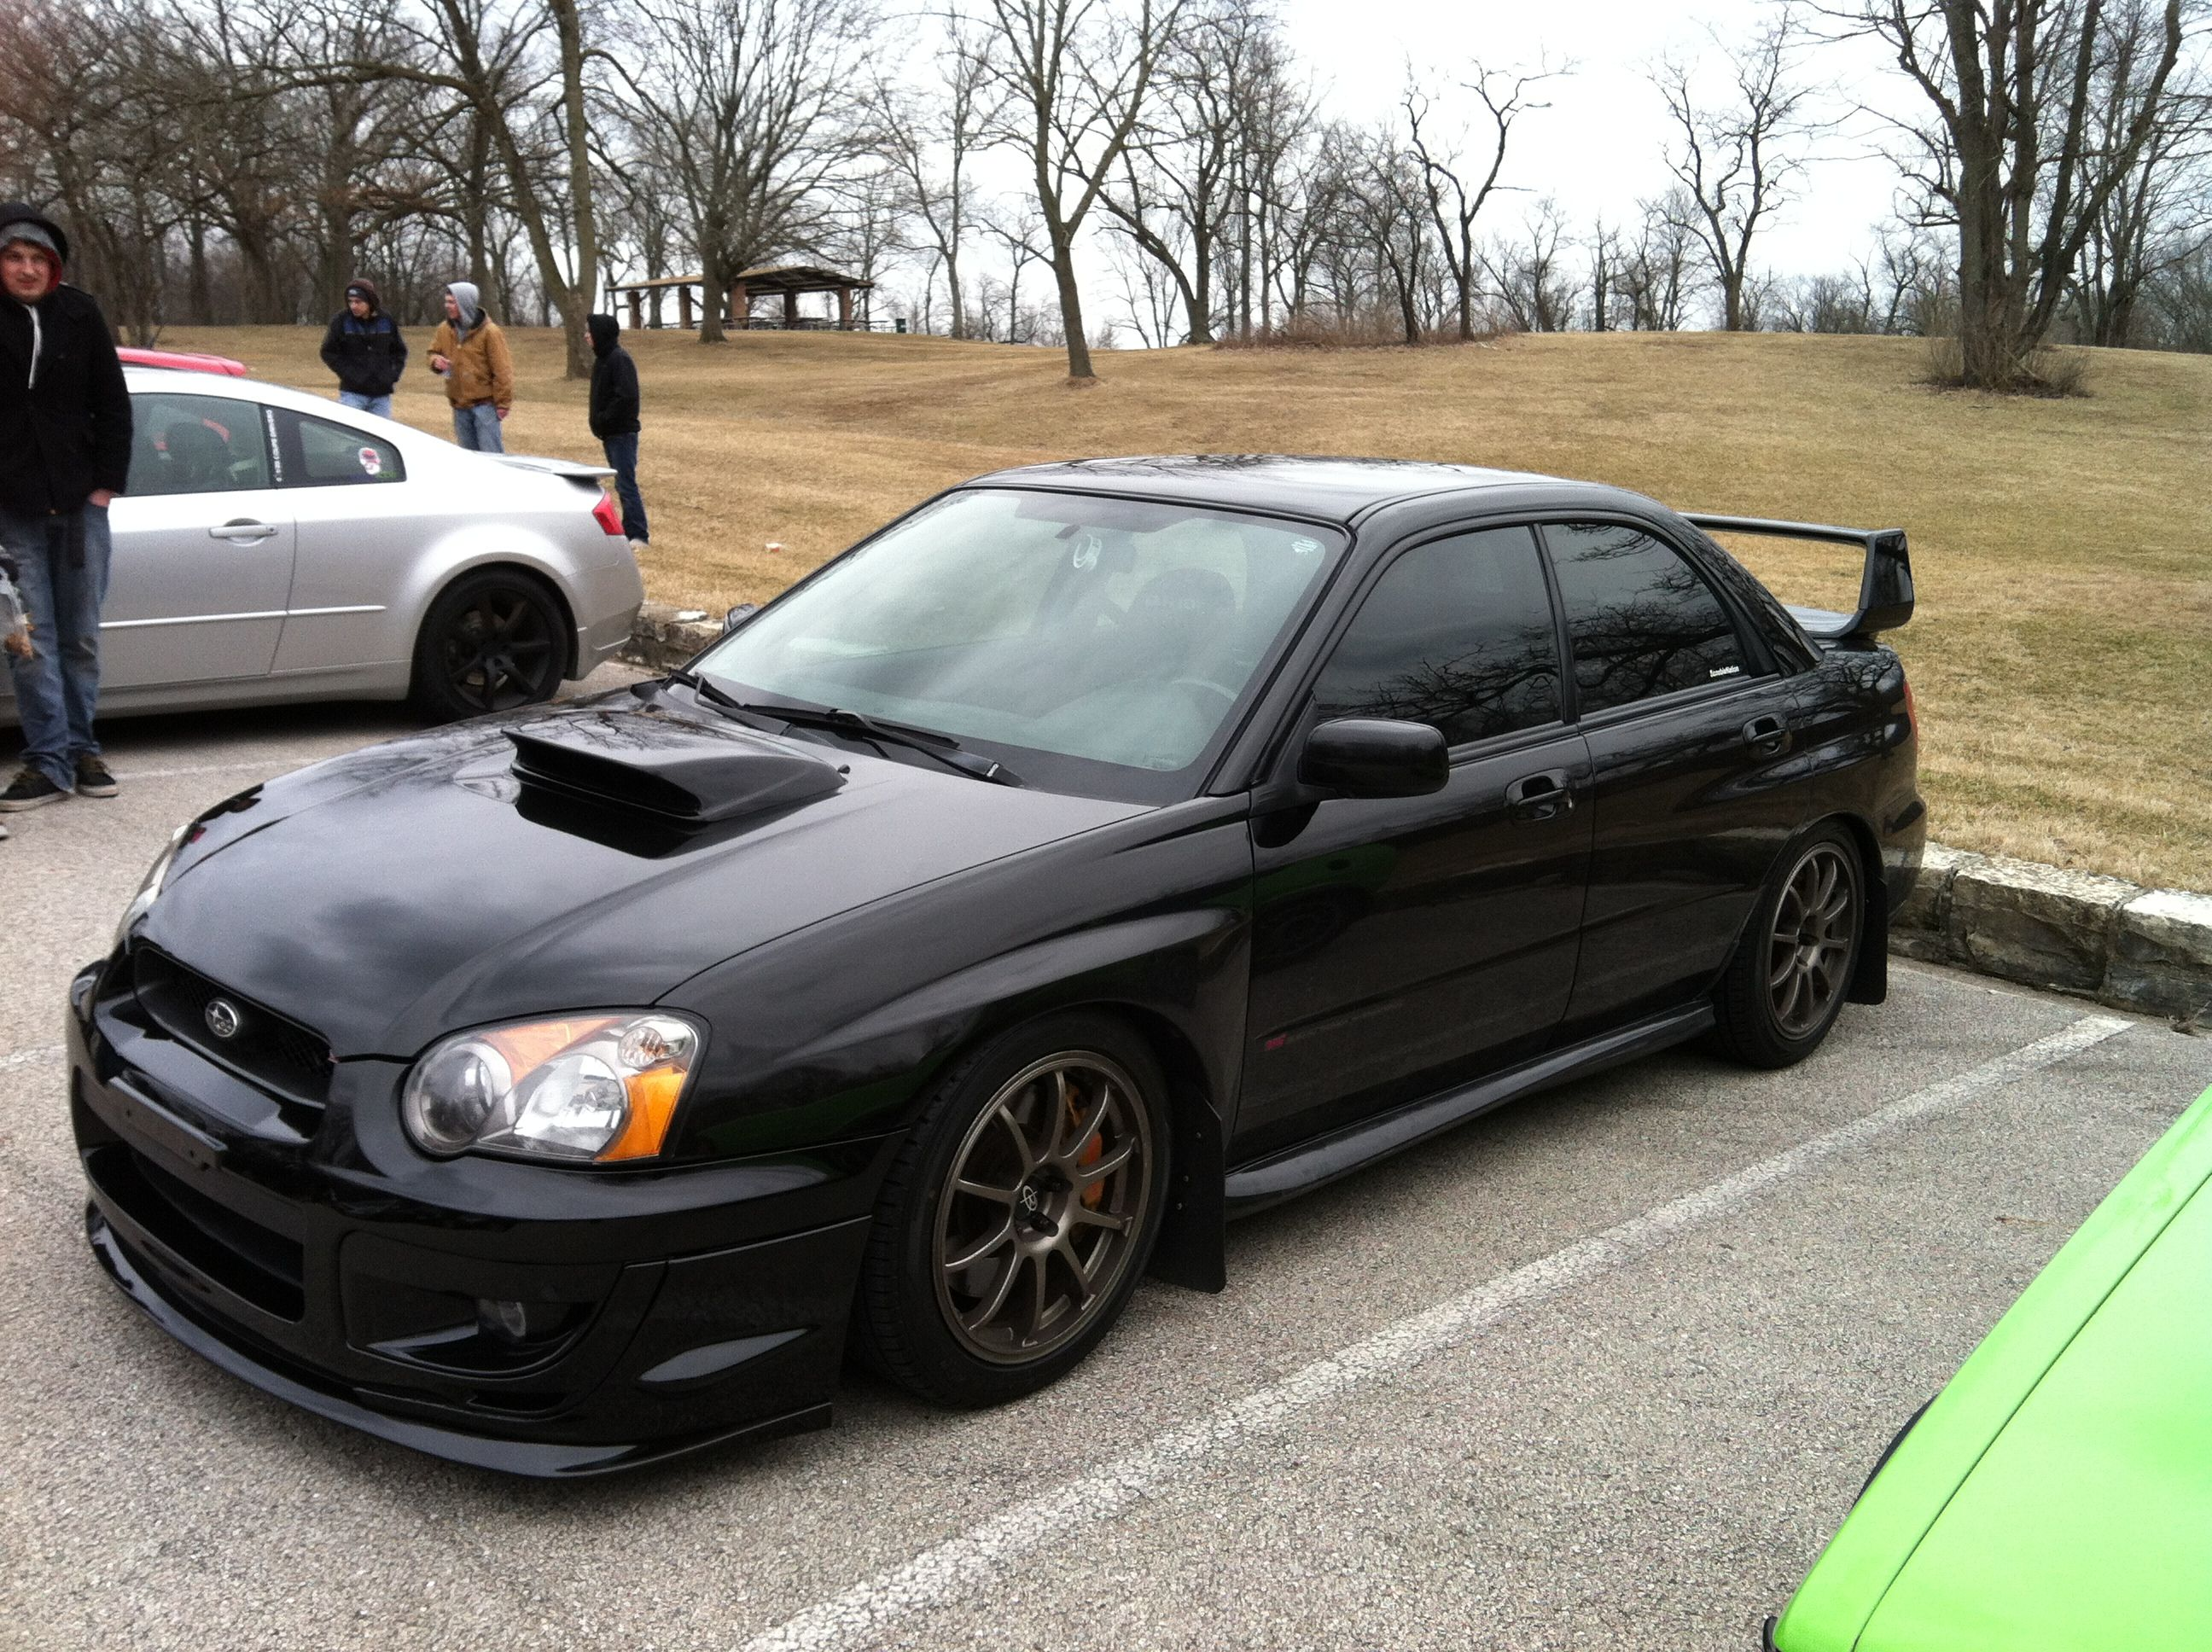 c73f12845c99c9d8b5aa81646f41228c Take A Look About 2002 Subaru Impreza Wrx Specs